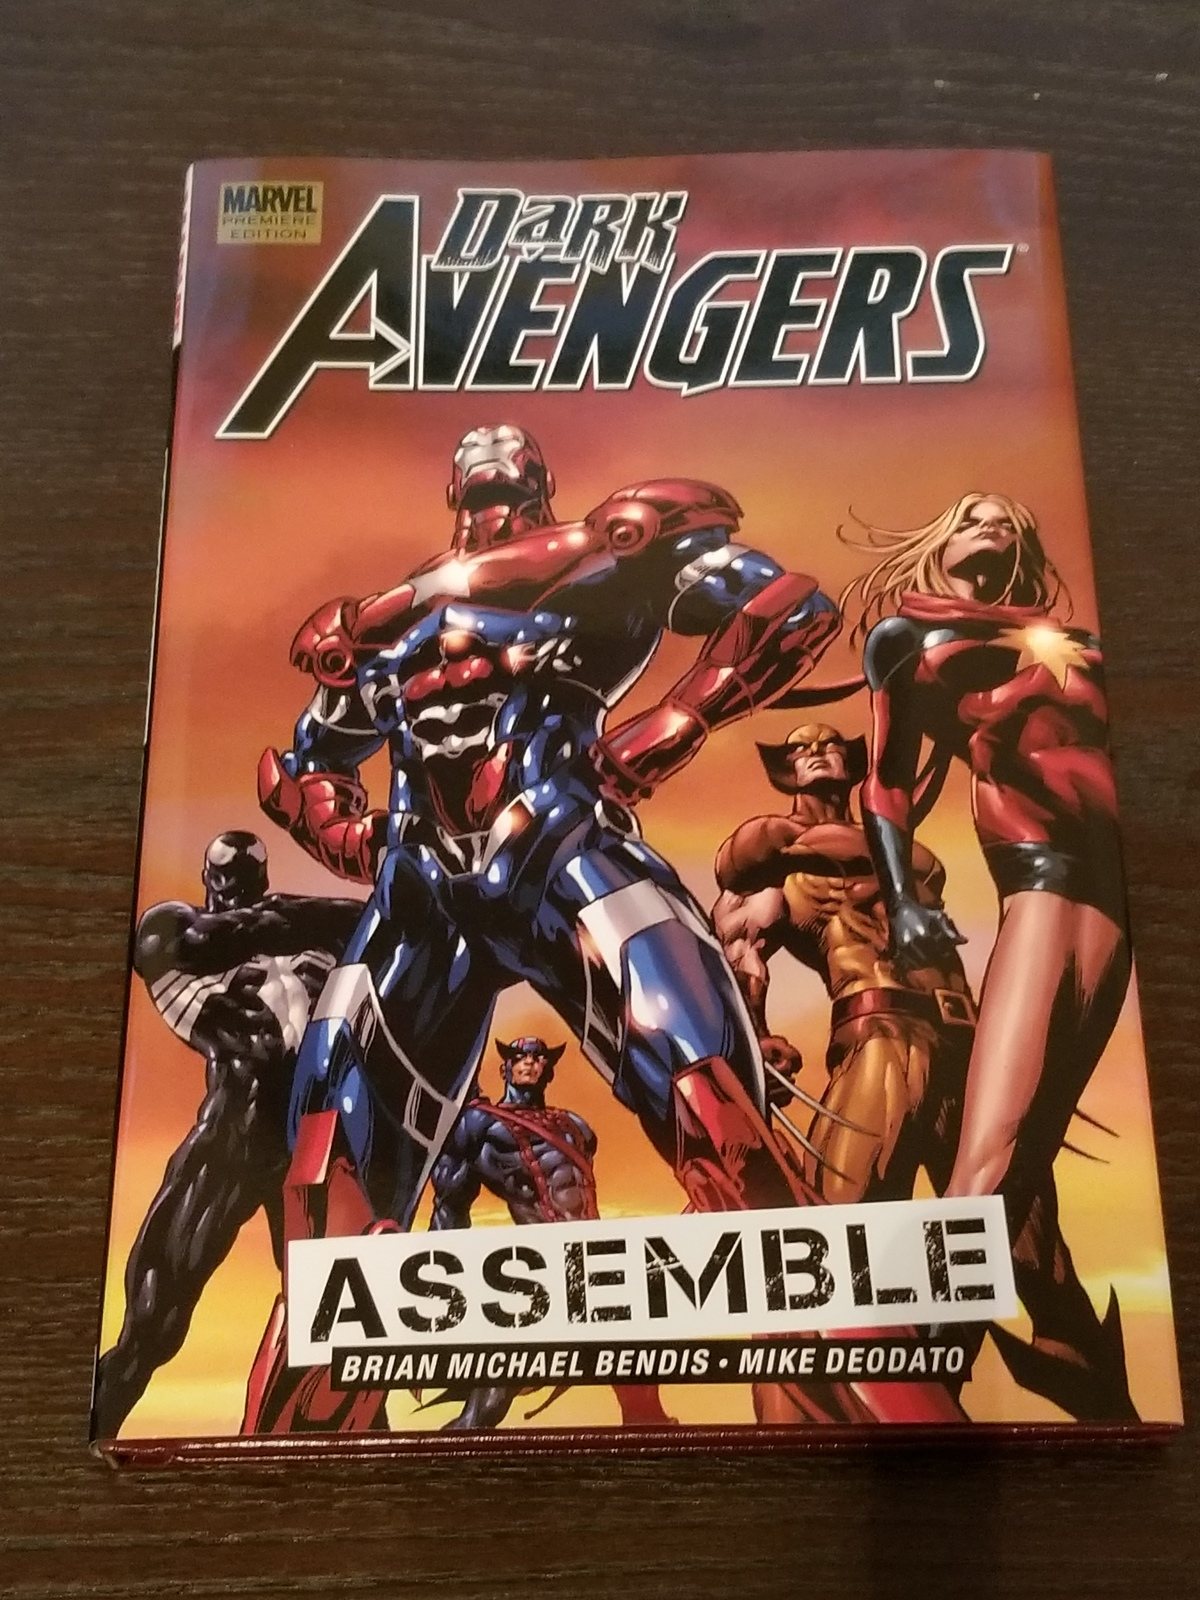 Dark Avengers: Assemble Volume 1 Hardcover Graphic Novel